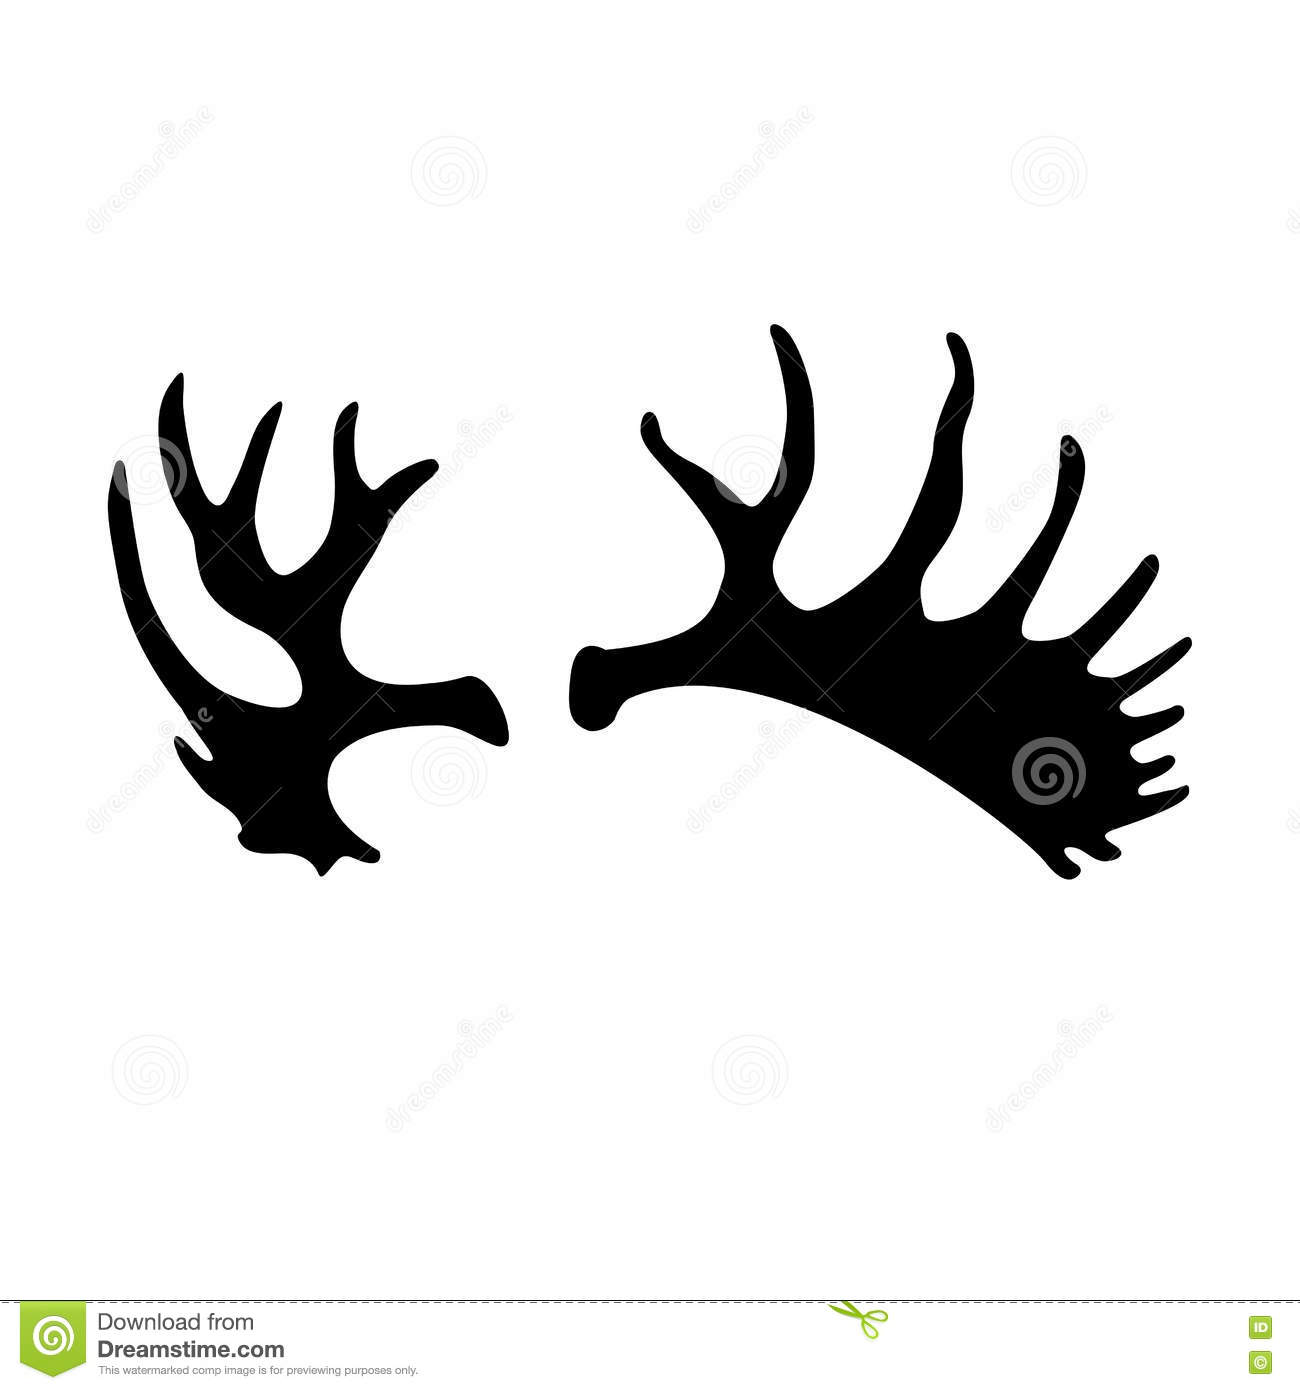 Adult Moose Antlers Black Silhouette Vector Stock Vector